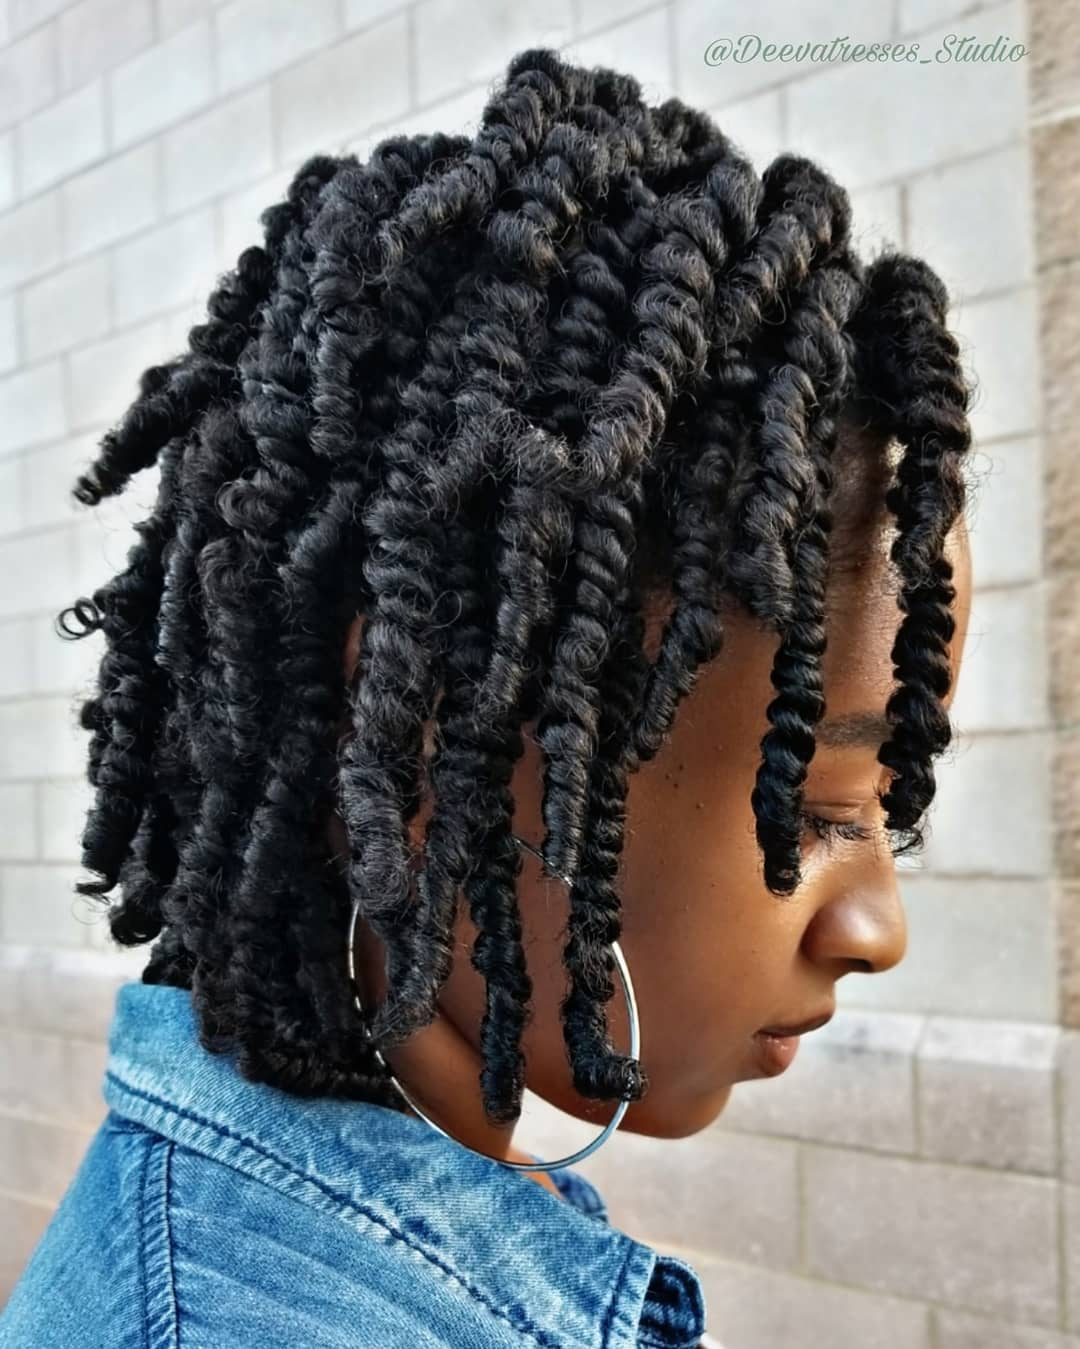 Black hairstyle protective twist braids for hair growth